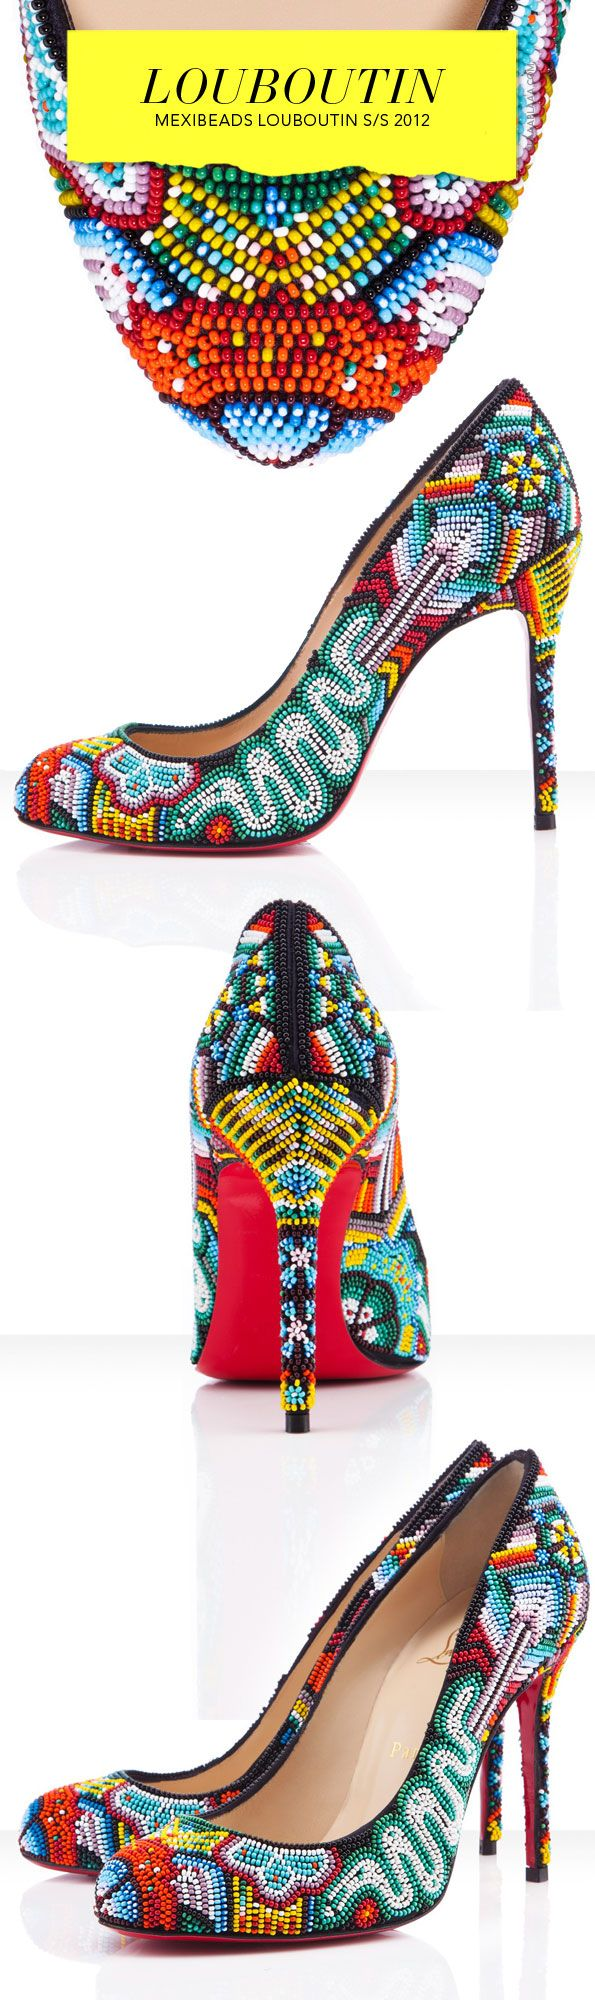 These are gorgeous,what a work of art! Huichol Louboutin calçados miçangas Compre miçanga: http://www.beadshop.com.br/?utm_source=pinterestutm_medium=pintpartner=pin13